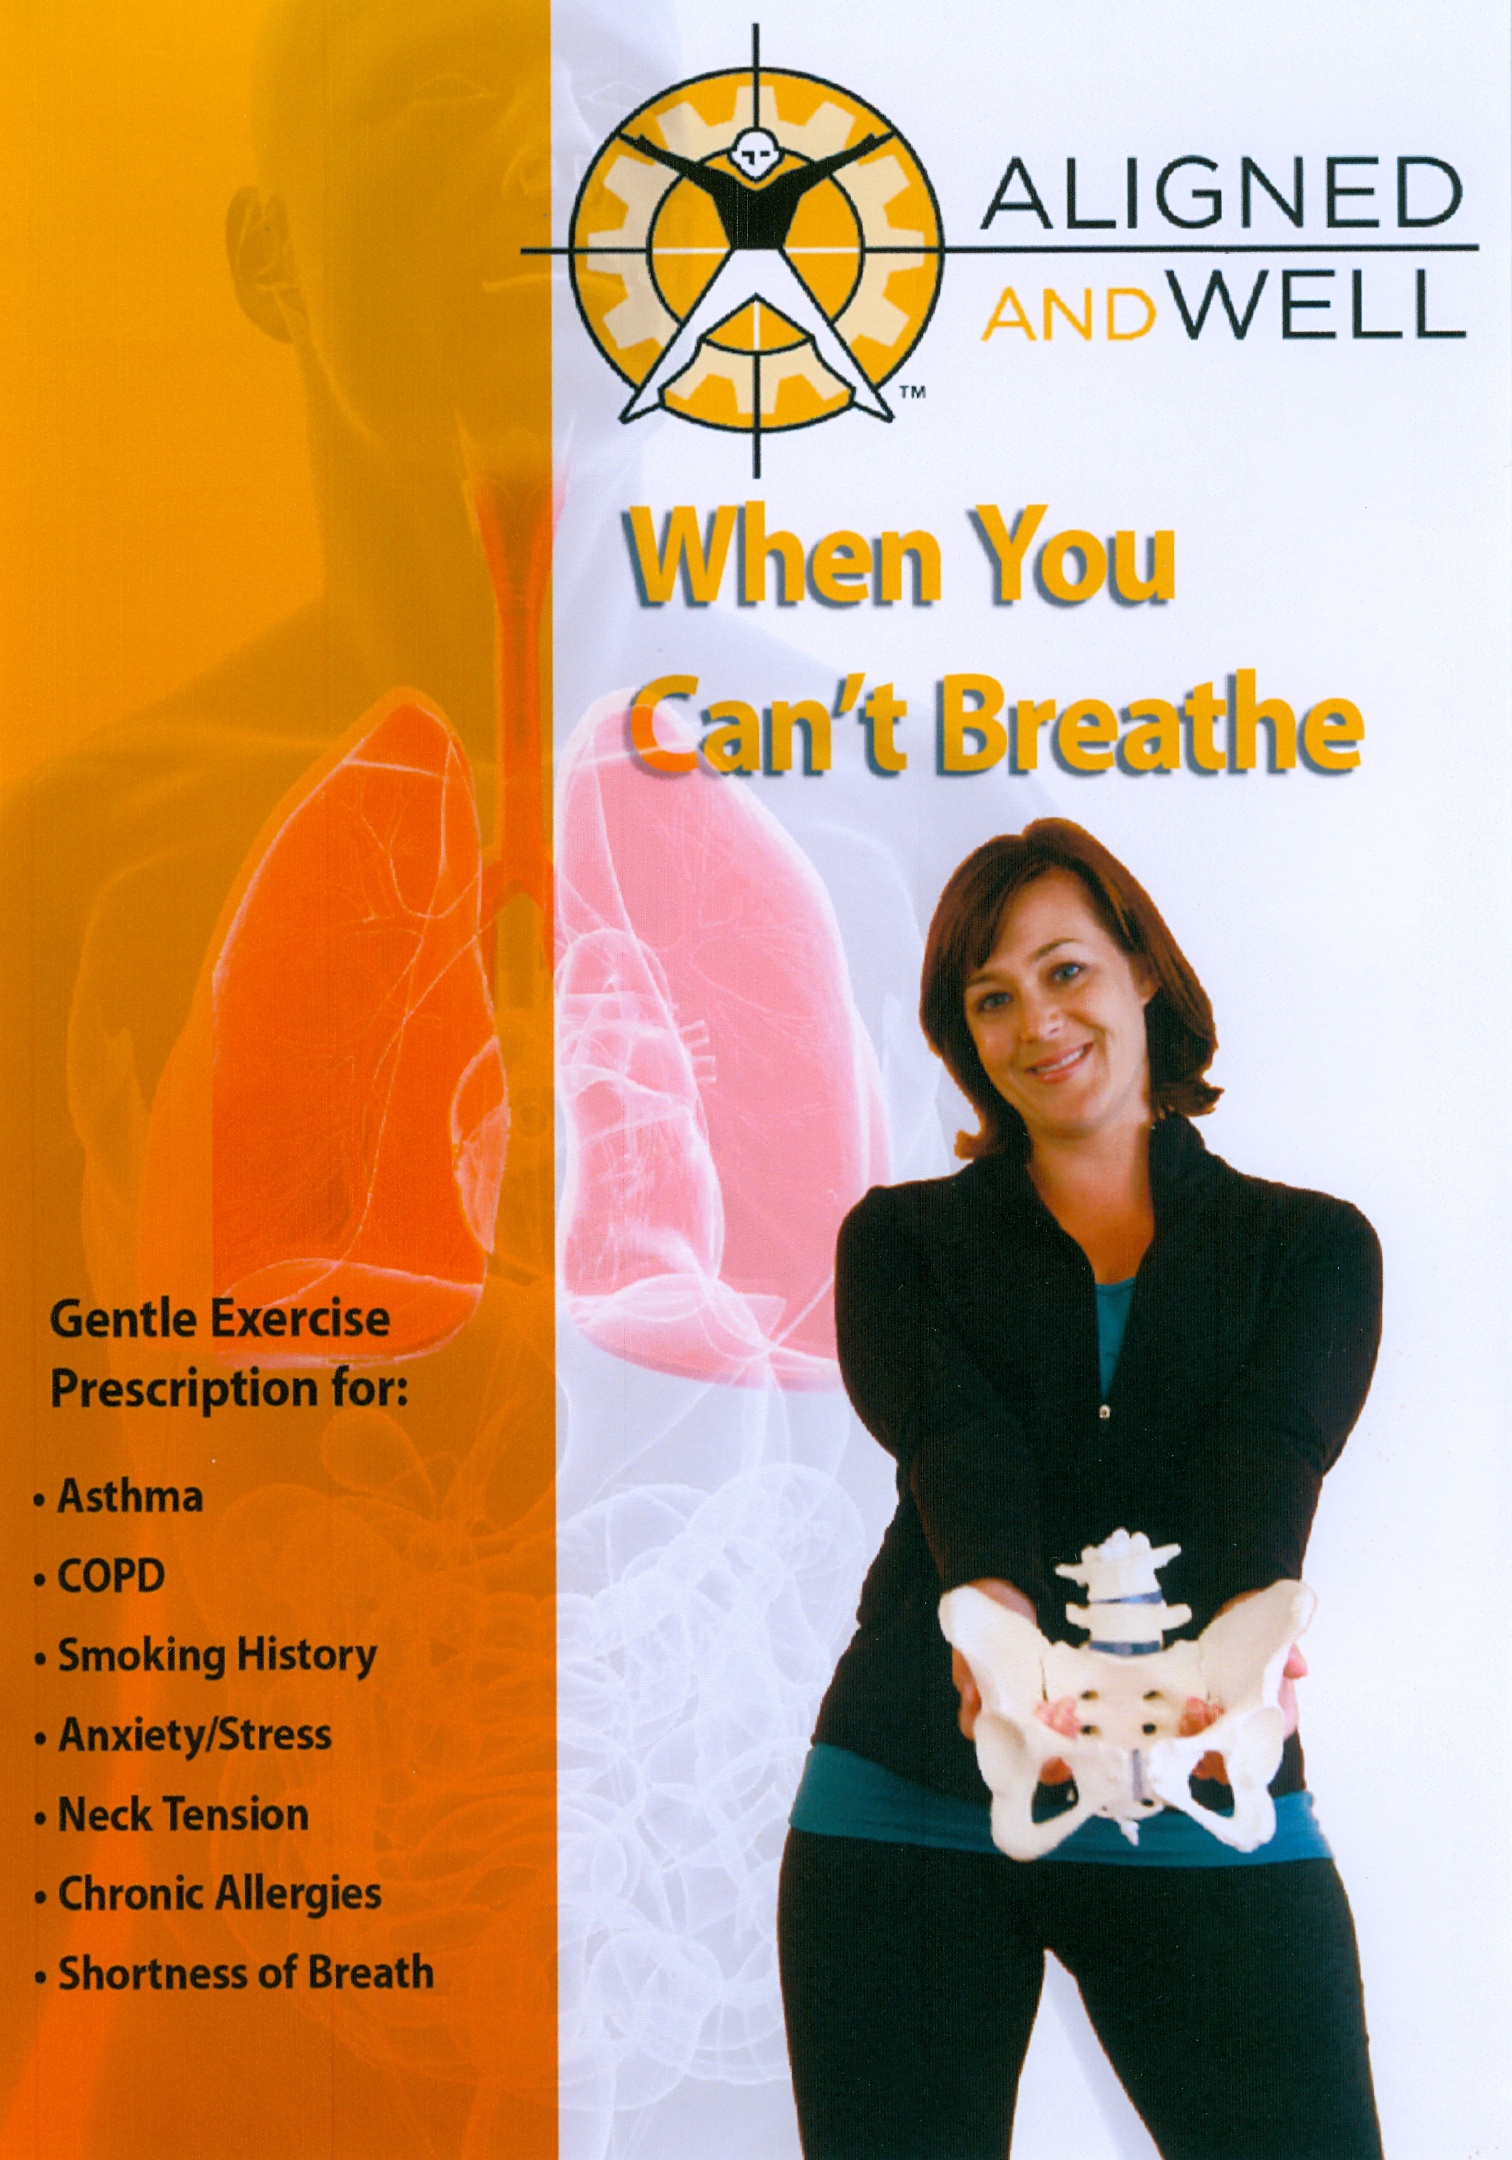 Aligned and Well: When You Can't Breathe